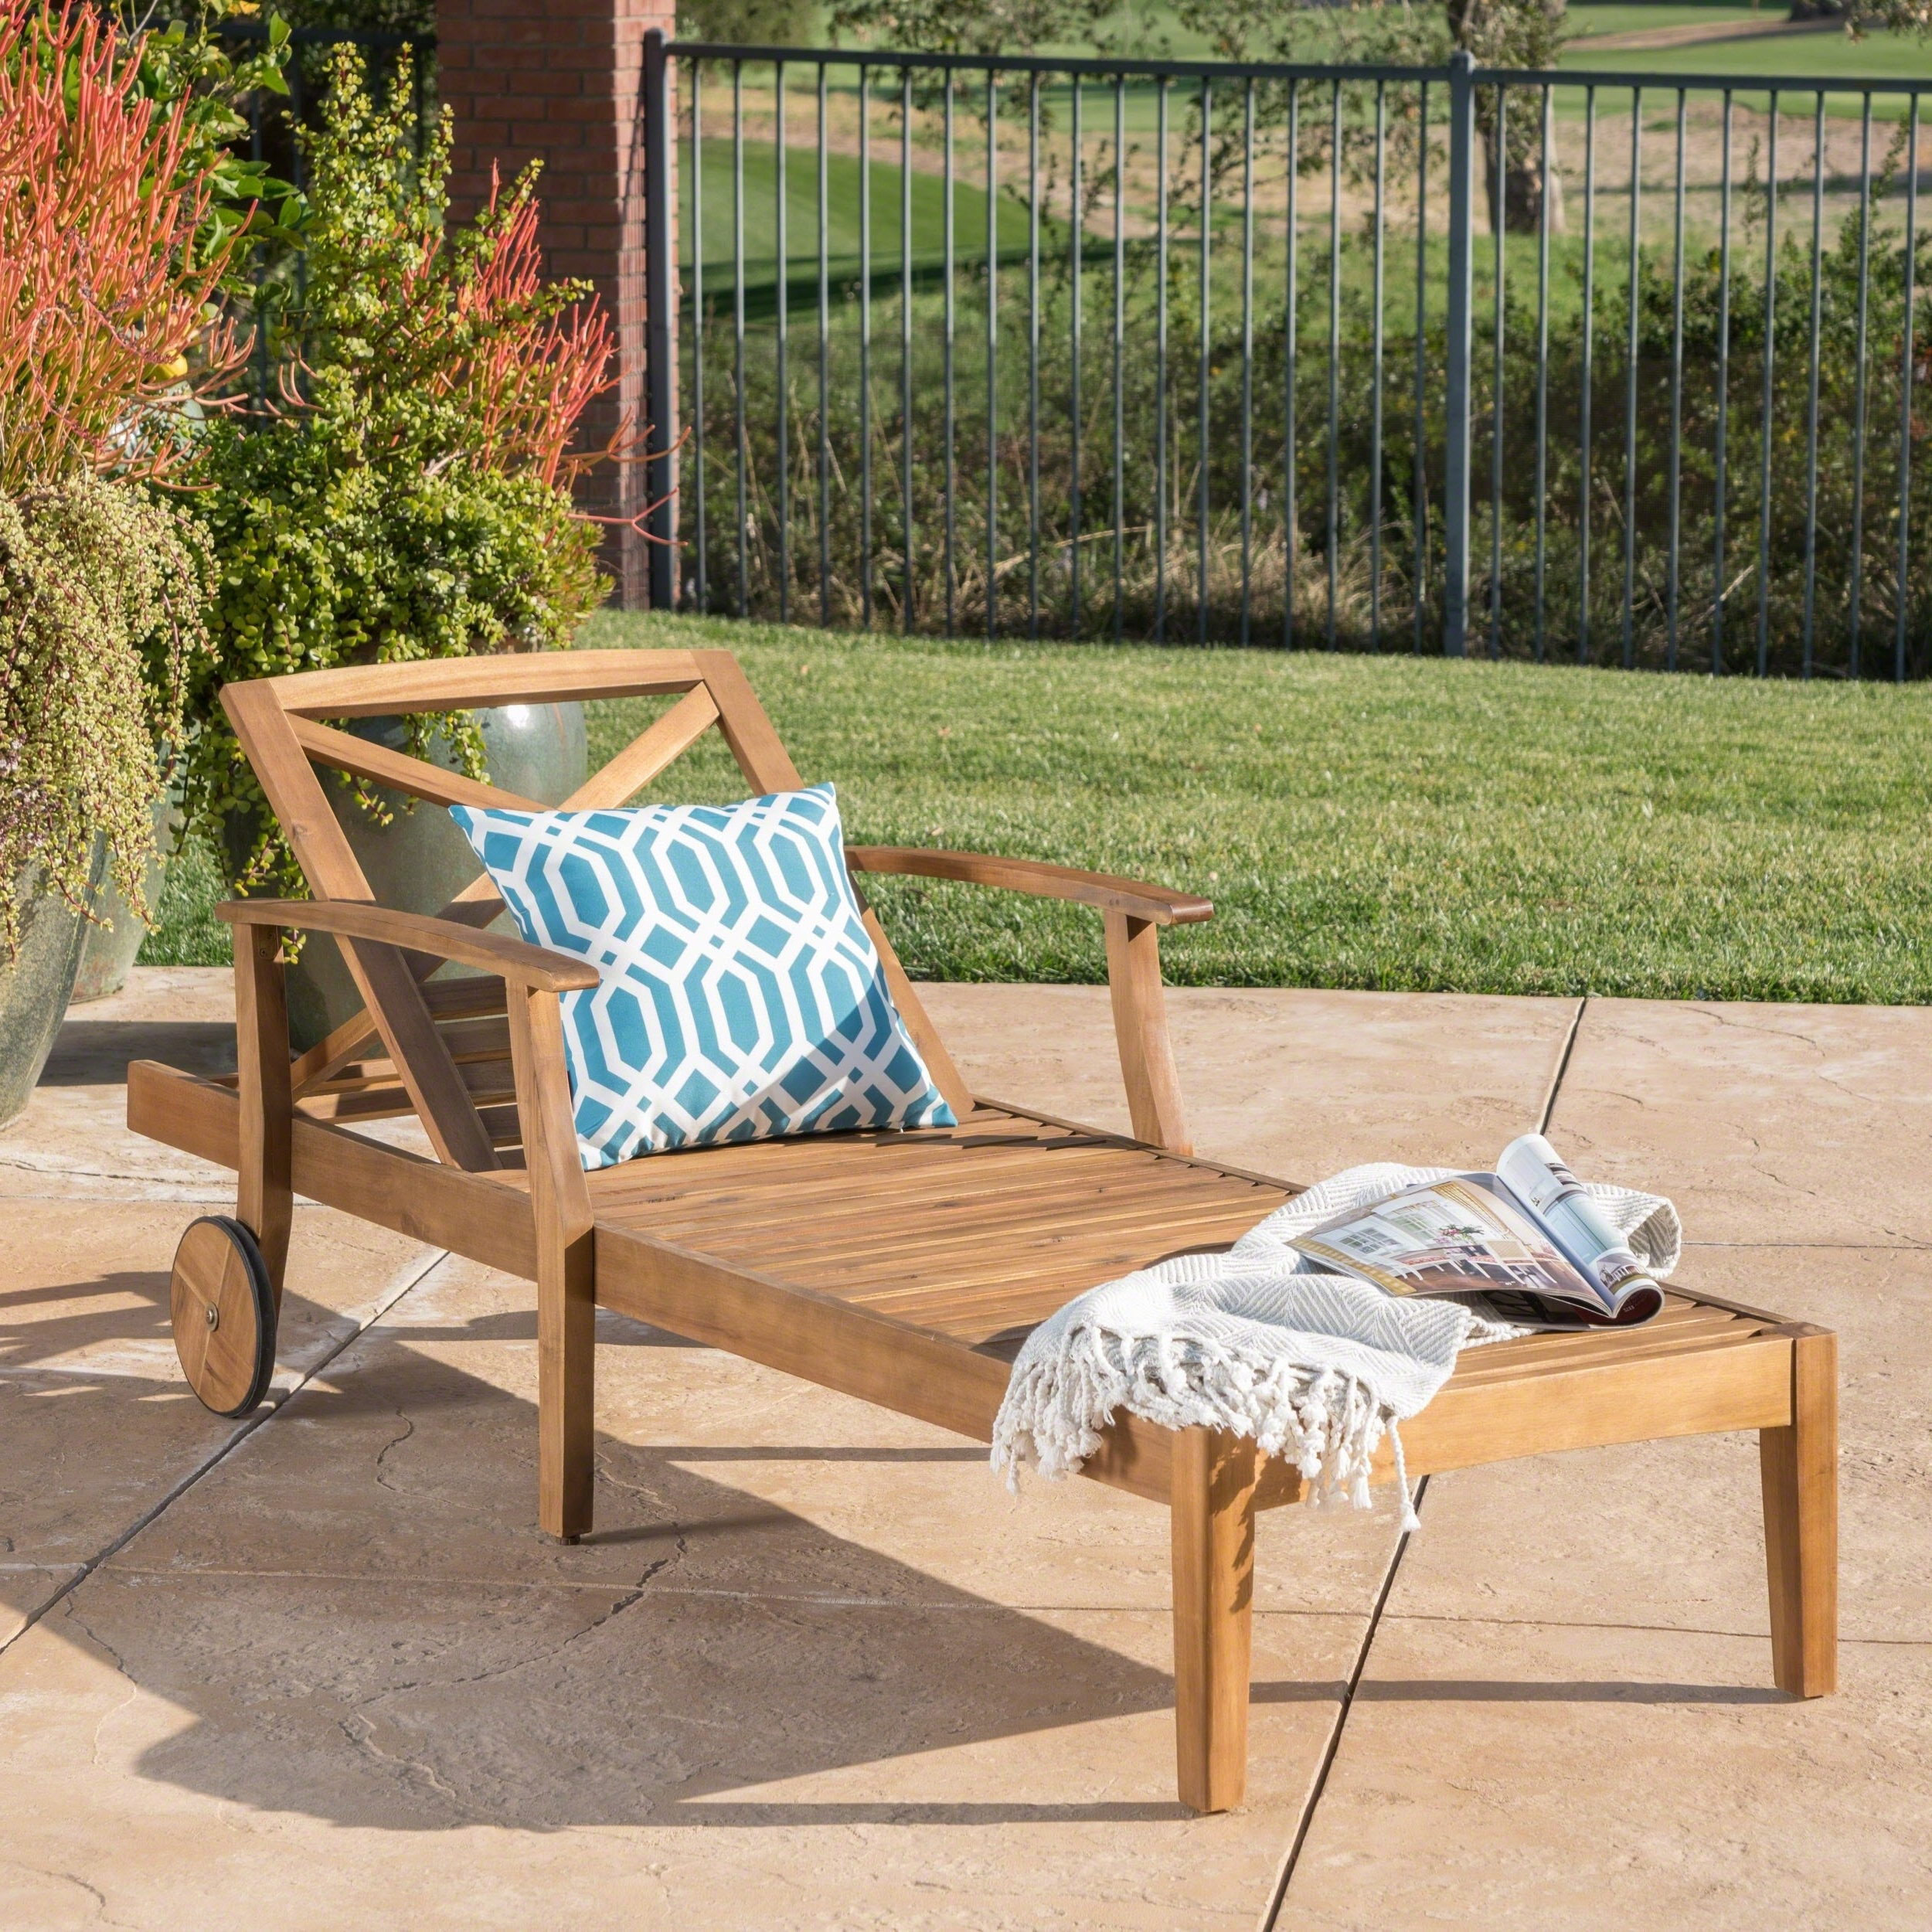 Perla Outdoor Acacia Wood Chaise Lounge With Cushion For Most Up To Date Christopher Knight Home Perla Outdoor Acacia Wood Chaise Lounge By (View 8 of 25)